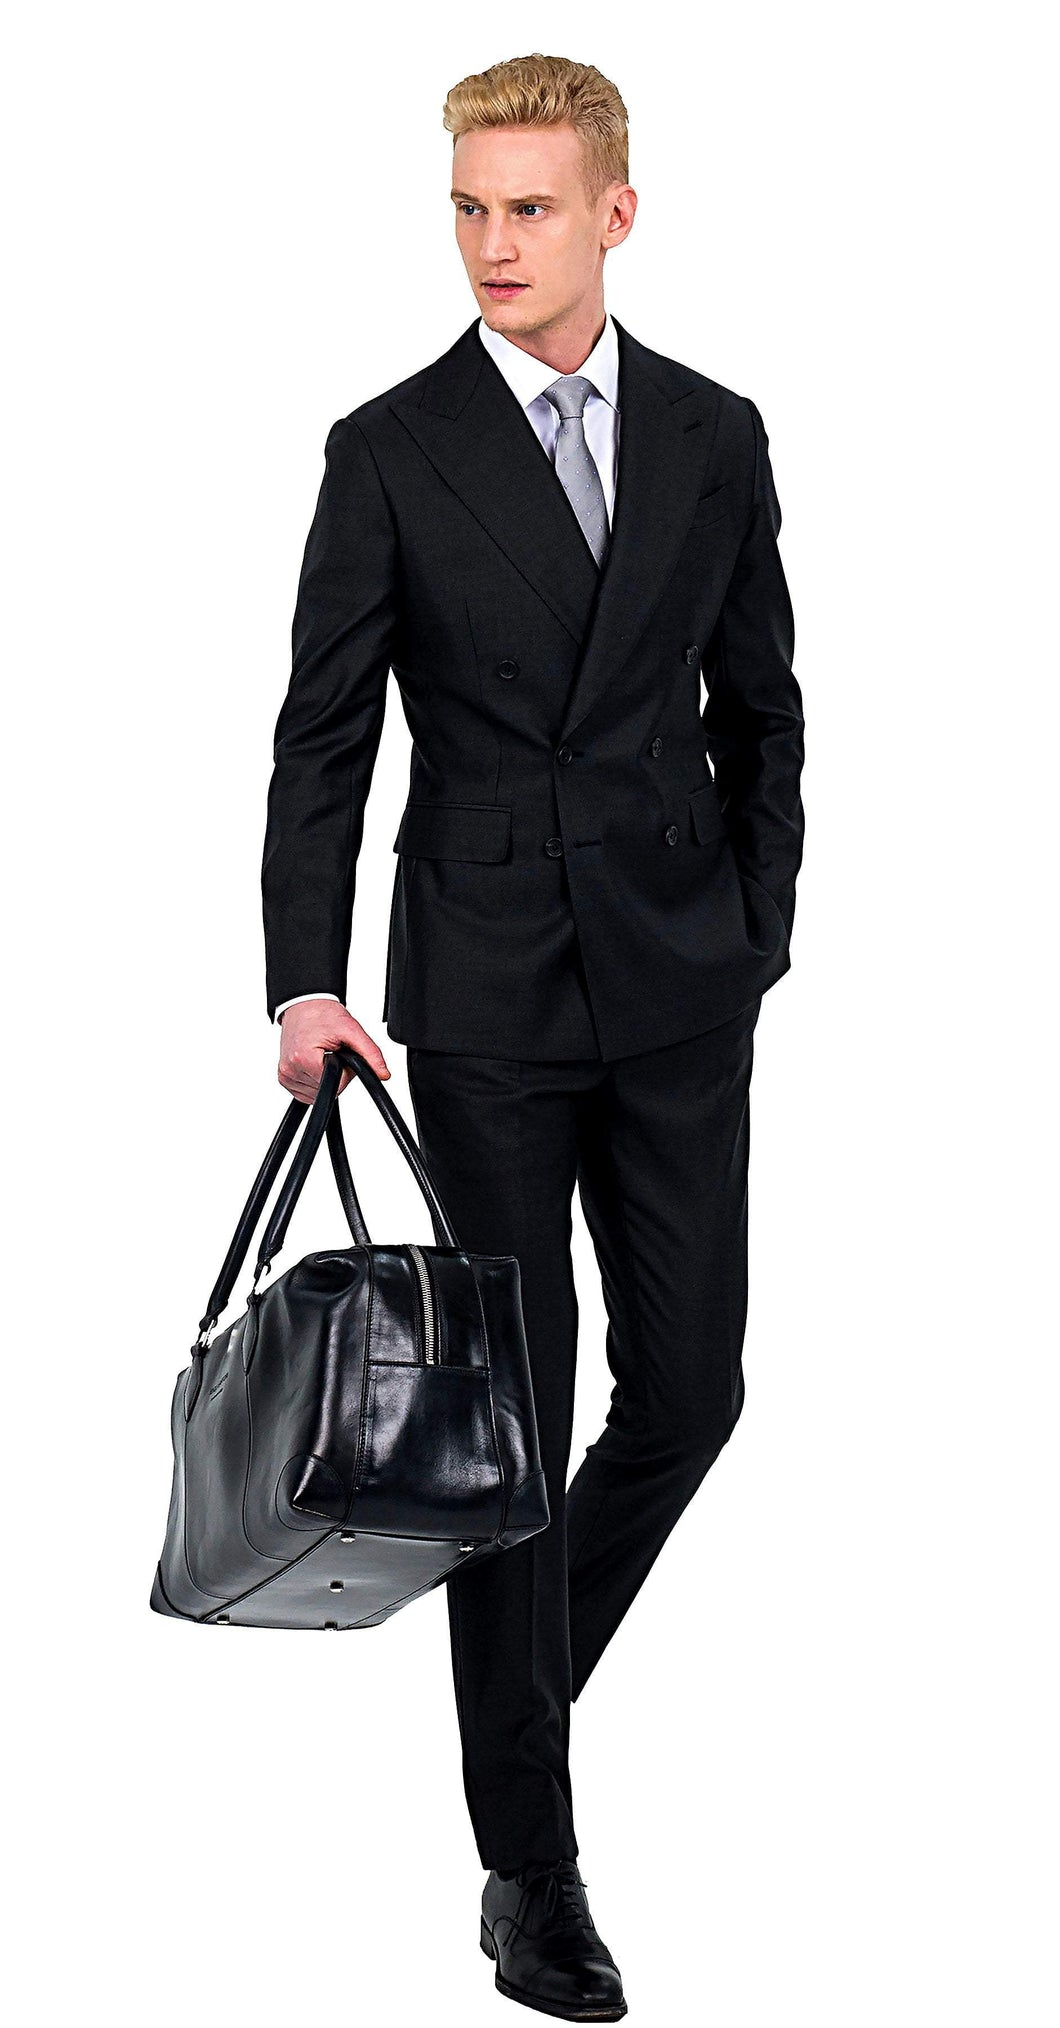 Loro Piana Super 150s Double-Breasted Charcoal Suit - Enzo Custom